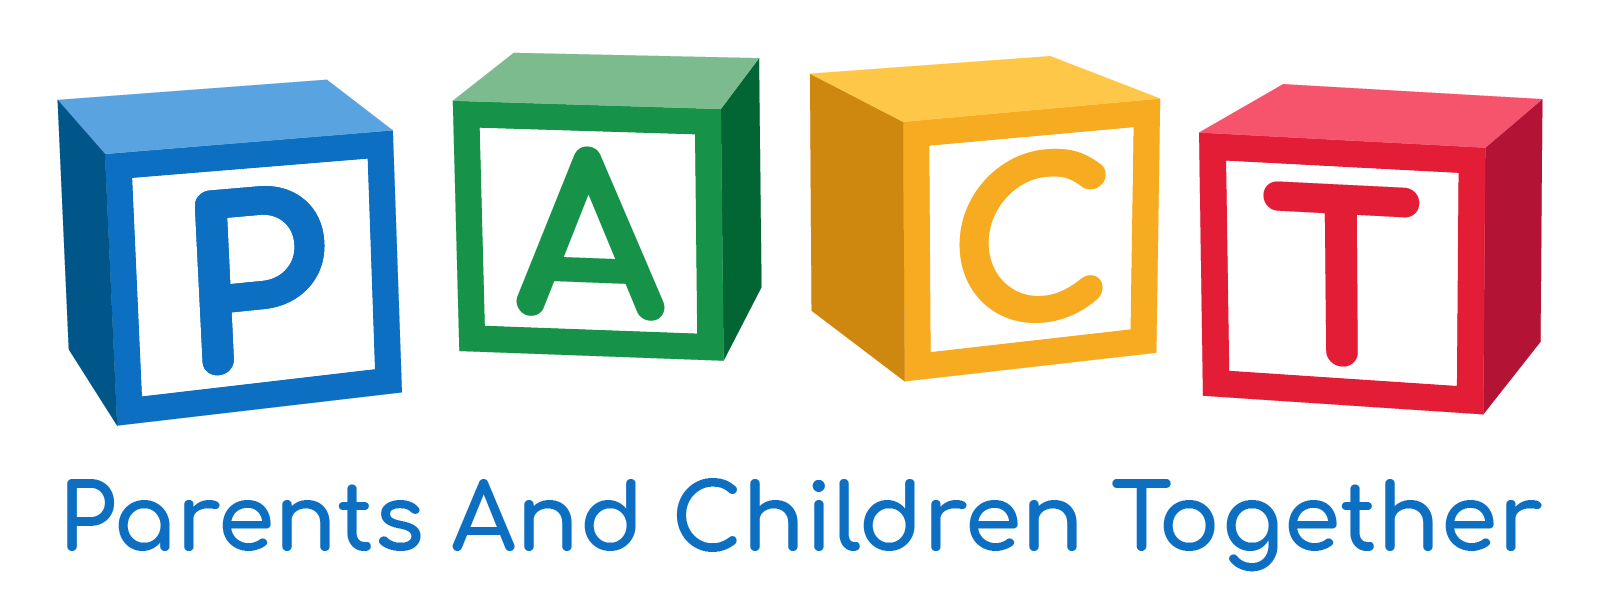 Image of PACT Charity